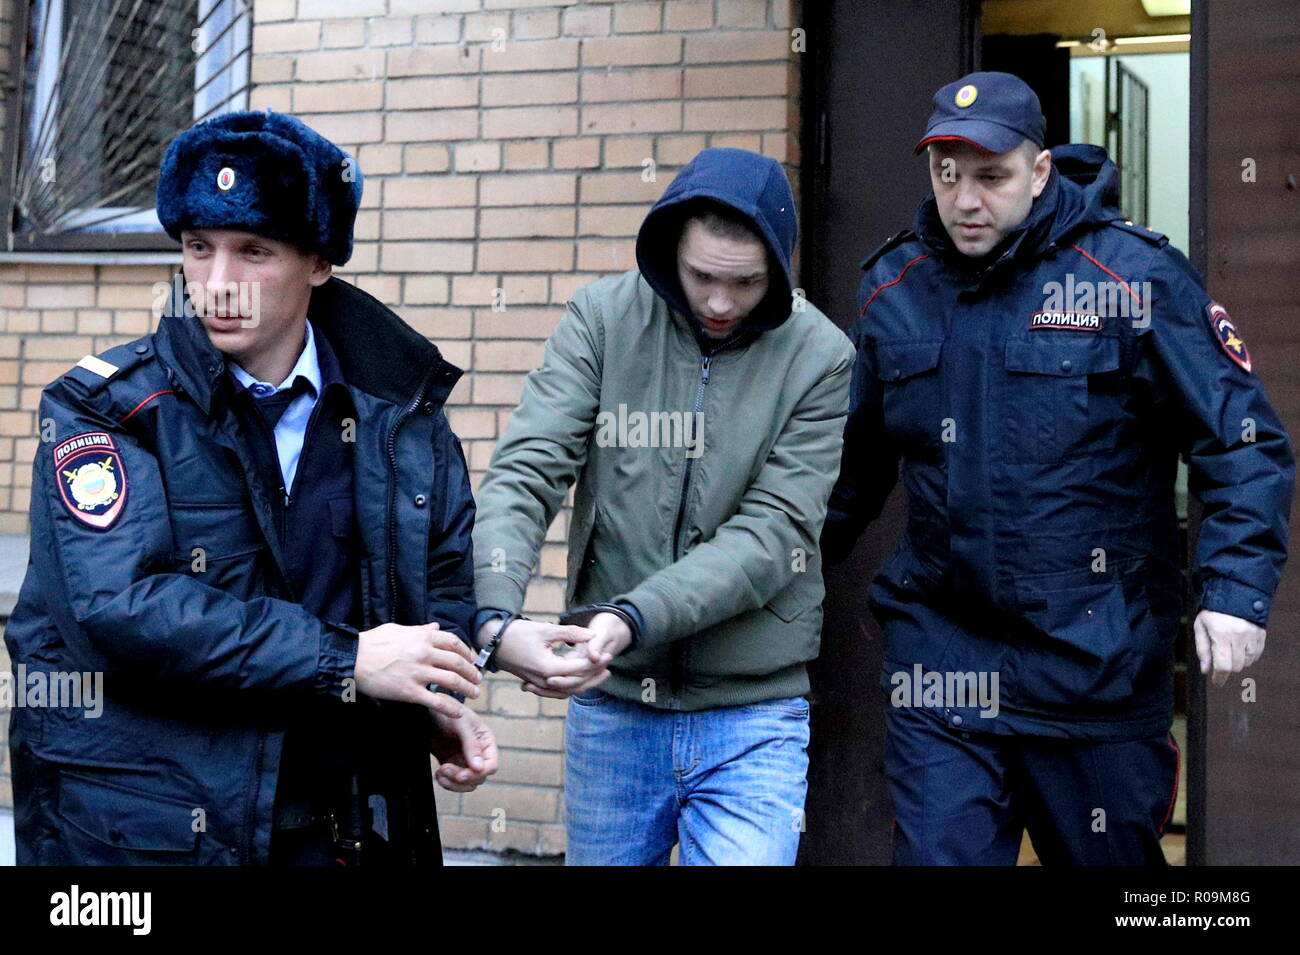 MOSCOW, RUSSIA - NOVEMBER 3, 2018: Police officers lead a teenager (C) who was detained 2 November 2018 after police seized an explosive device and related materials in his home; Moscow's Presnensky District court has extended the pre-trial detention of the teenager by 72 hours; according to the investigators, the teenager is suspected of having being in contact with a 17-year-old man who allegedly brought and was killed by an explosive device at an office of the Russian Federal Security Service (FSB) in Arkhangelsk on 31 October 2018. Sergei Bobylev/TASS Stock Photo